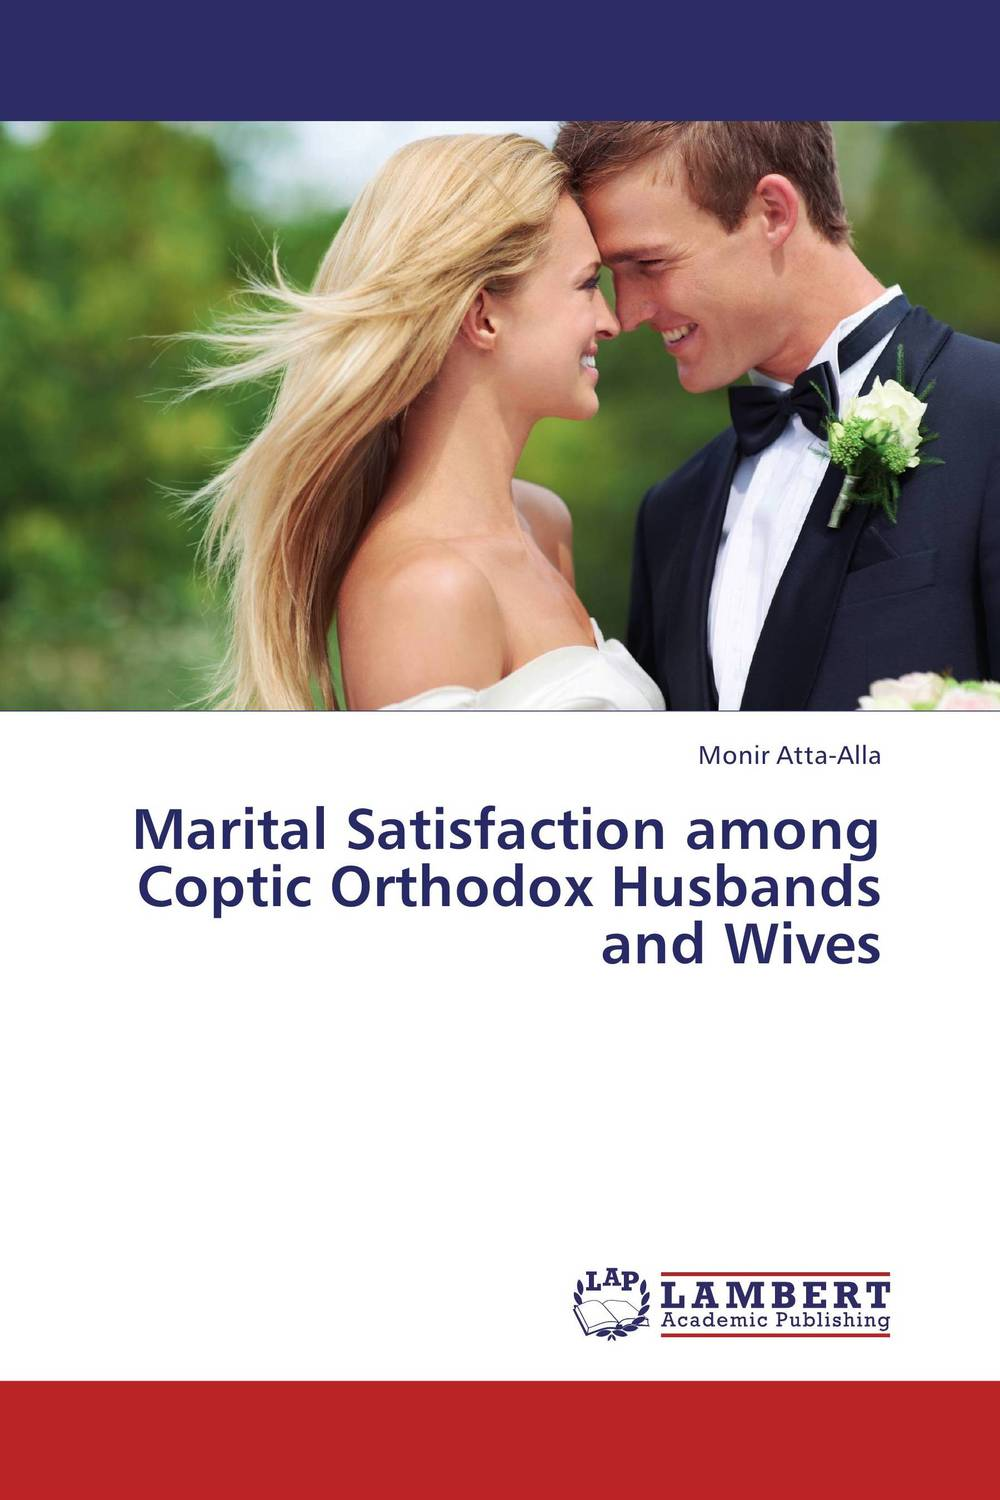 Marital Satisfaction among Coptic Orthodox Husbands and Wives adultery